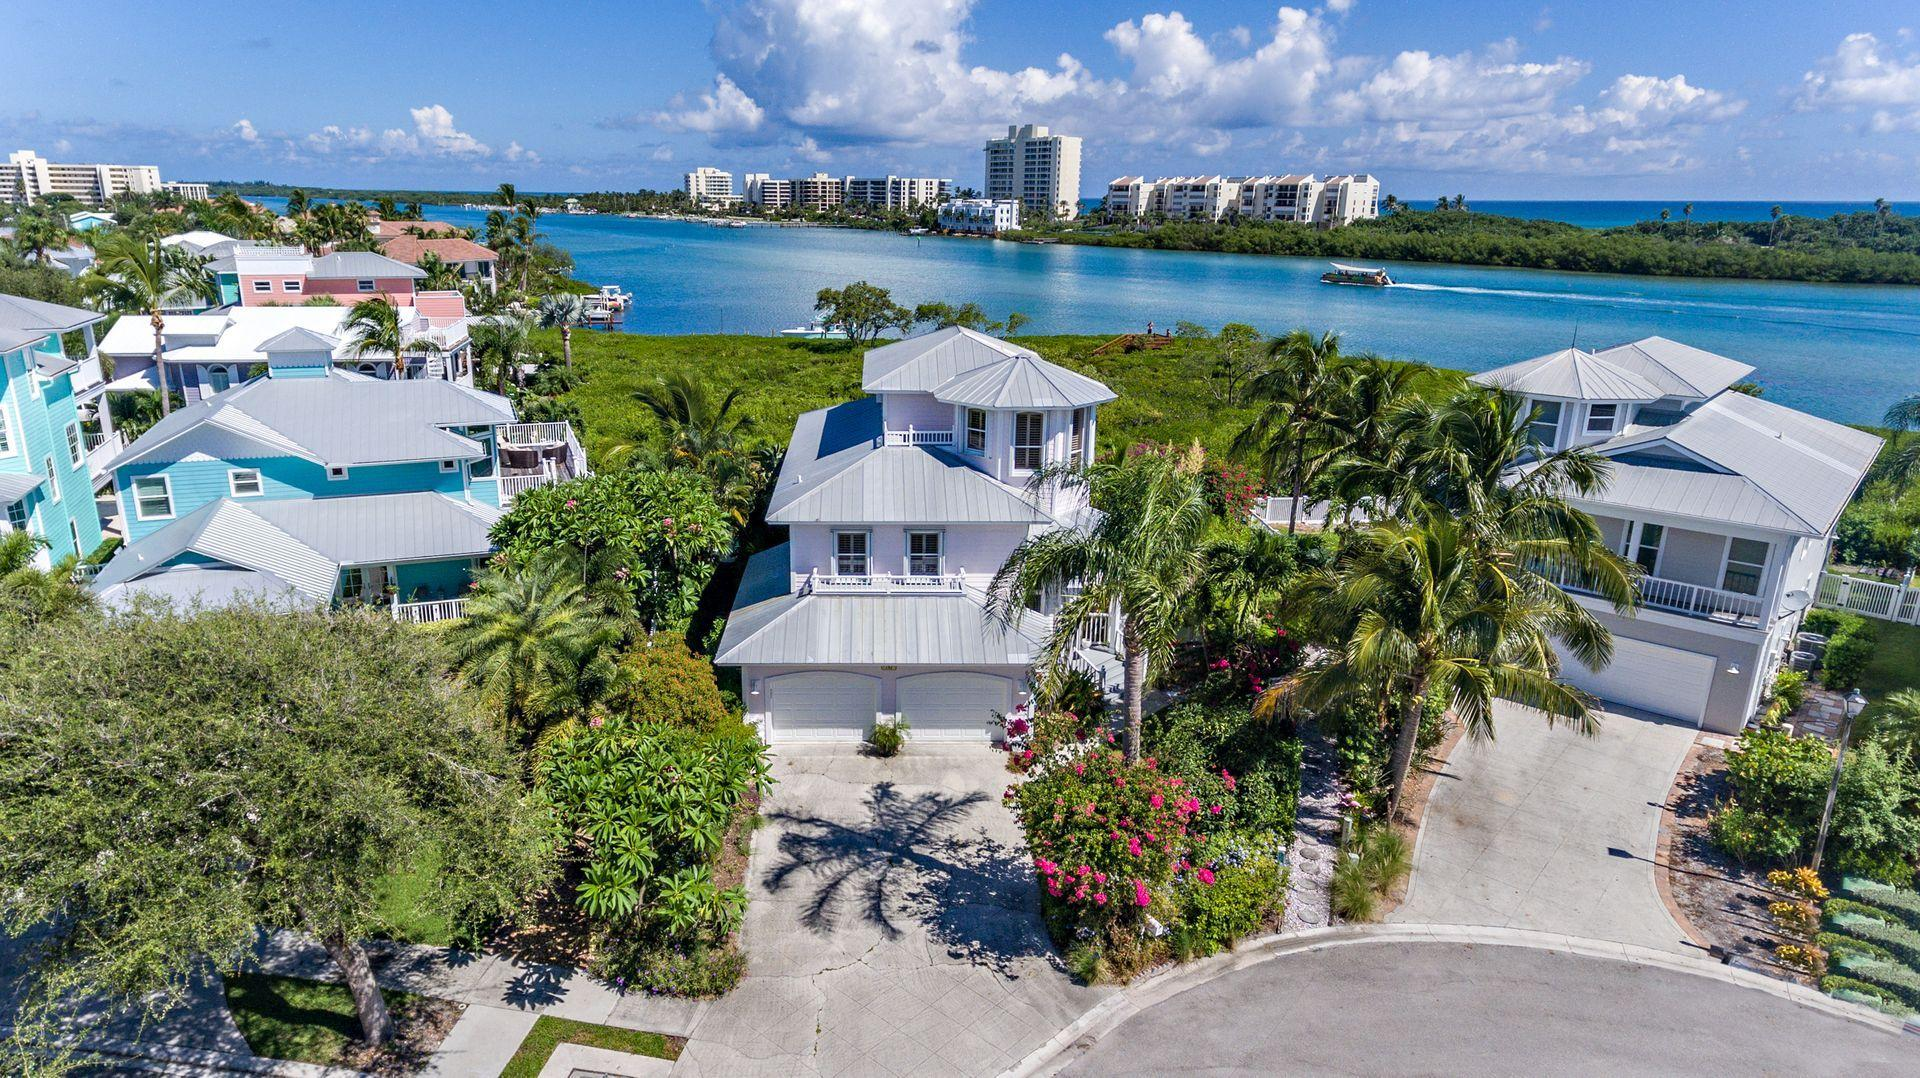 New Home for sale at 152 Intracoastal Circle in Tequesta